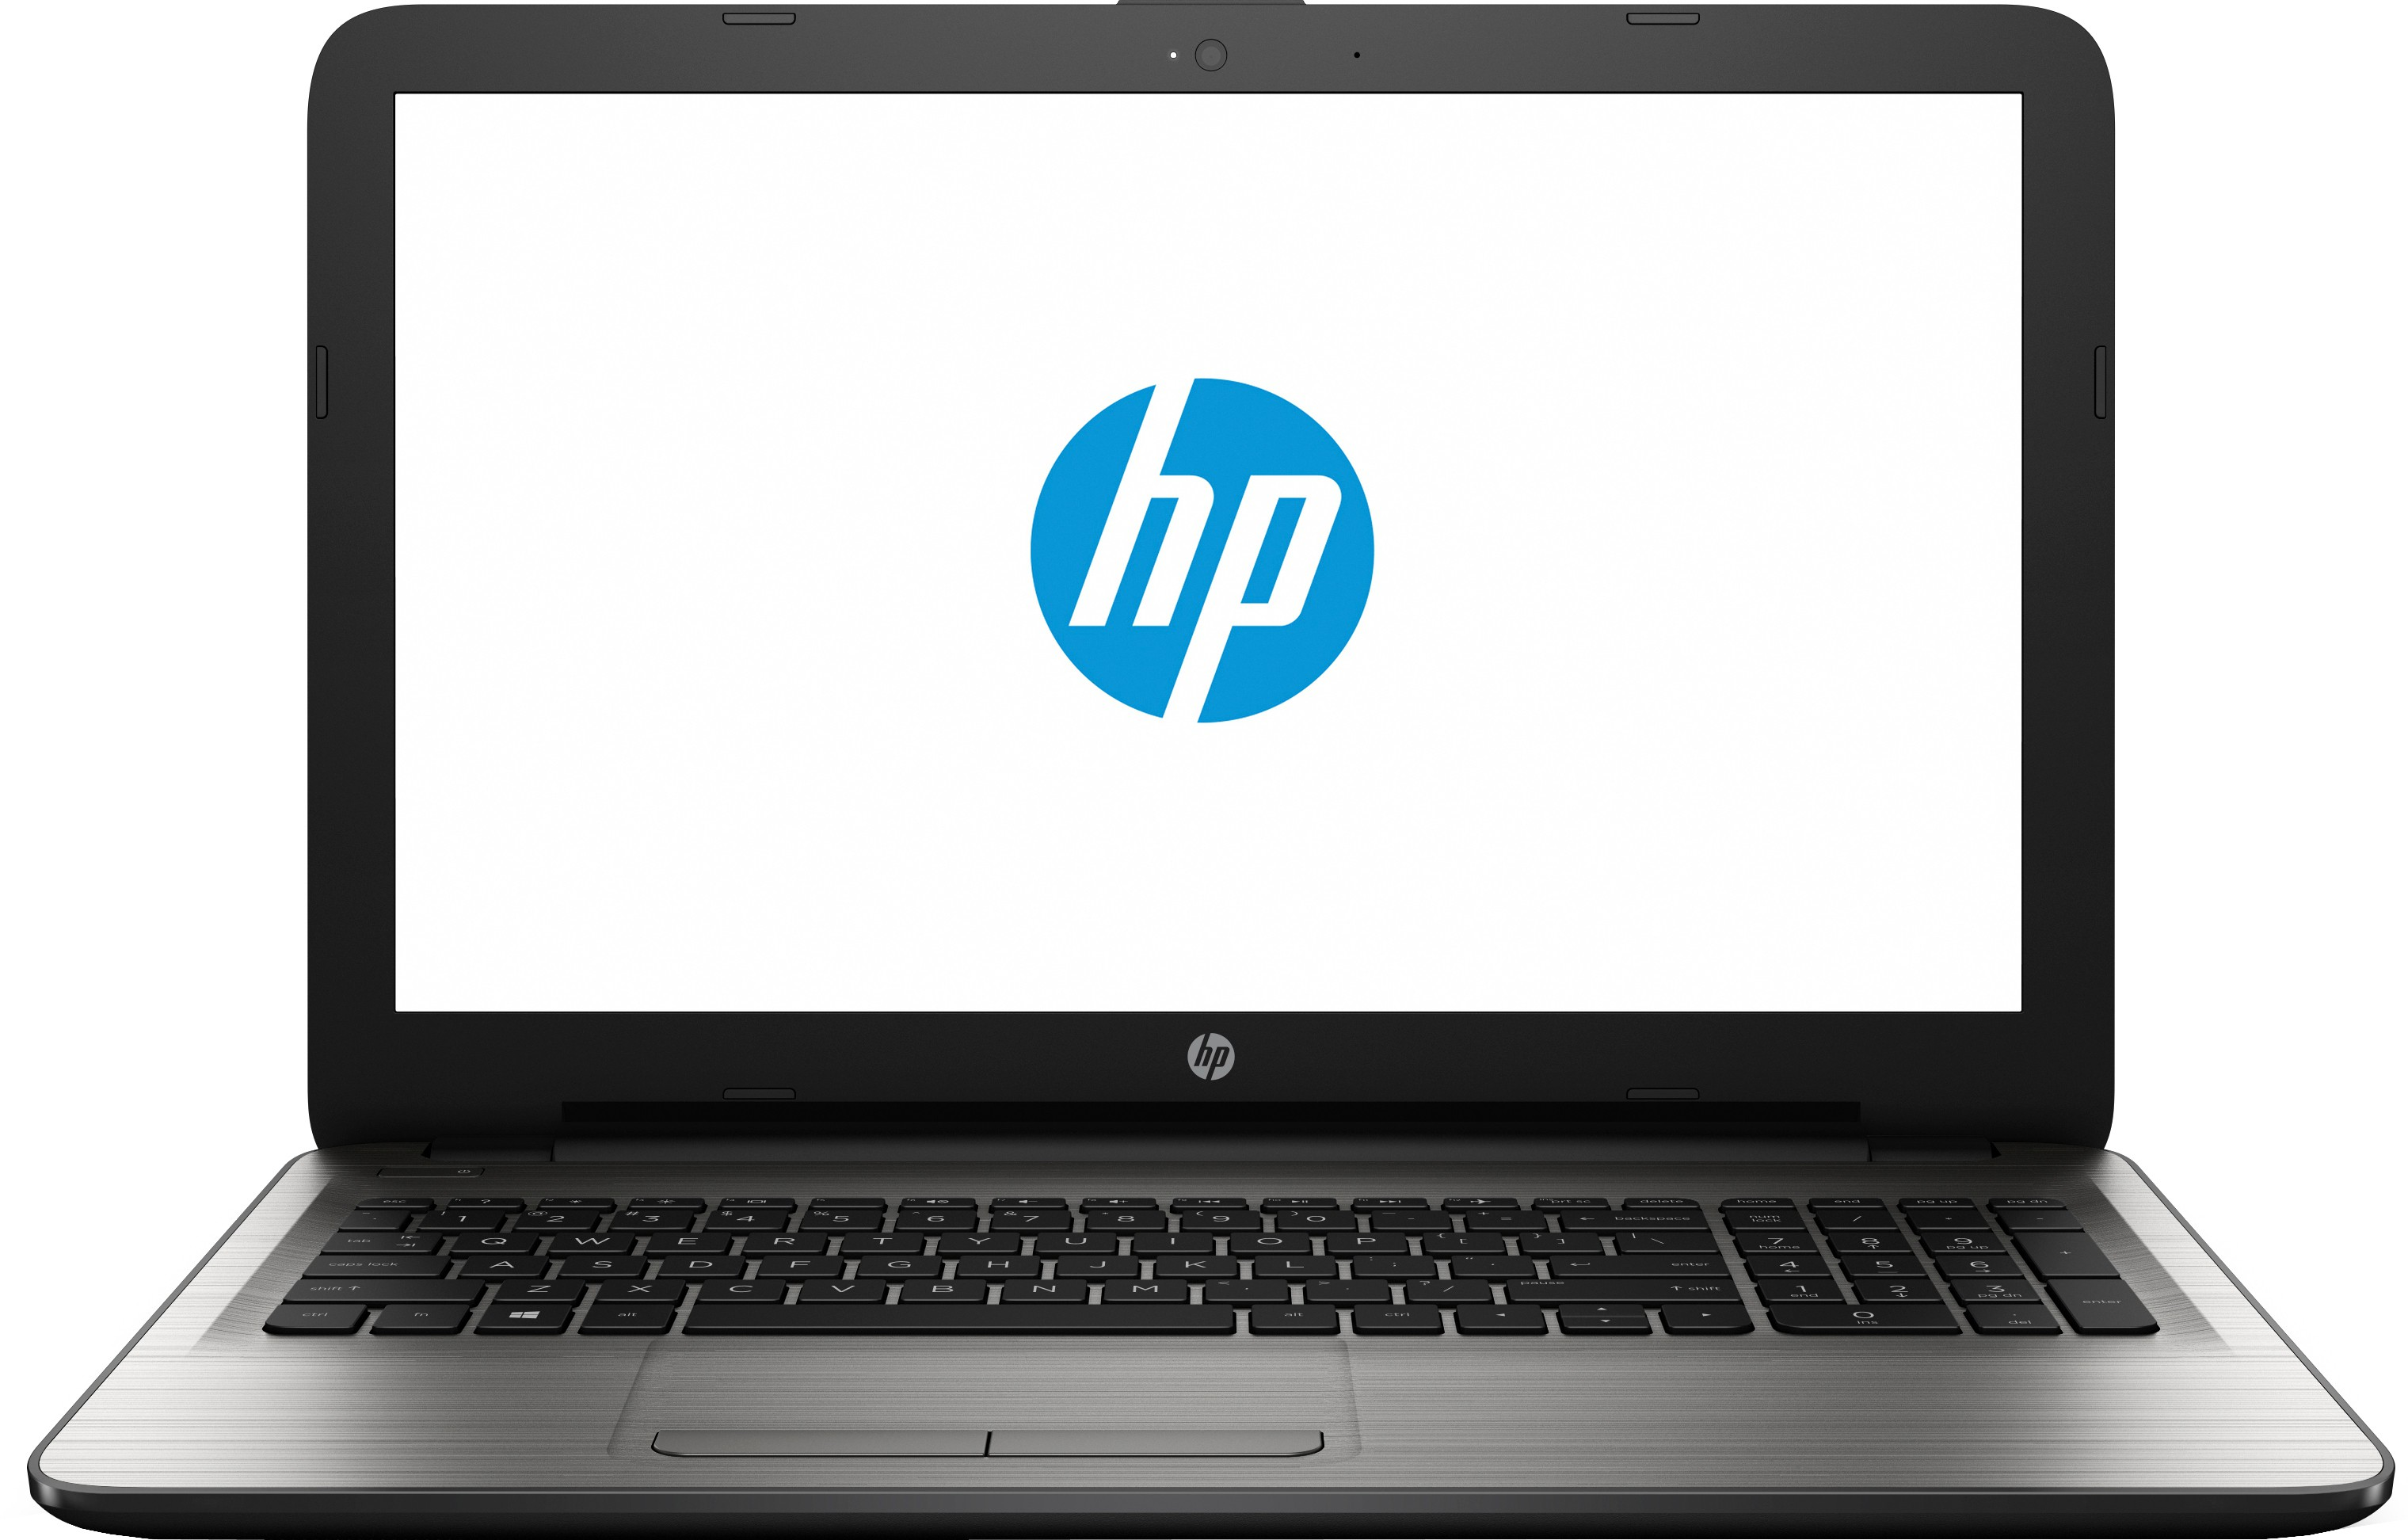 Deals - Jodhpur - From ₹ 56990 <br> Intel Core i7 Laptops<br> Category - computers<br> Business - Flipkart.com